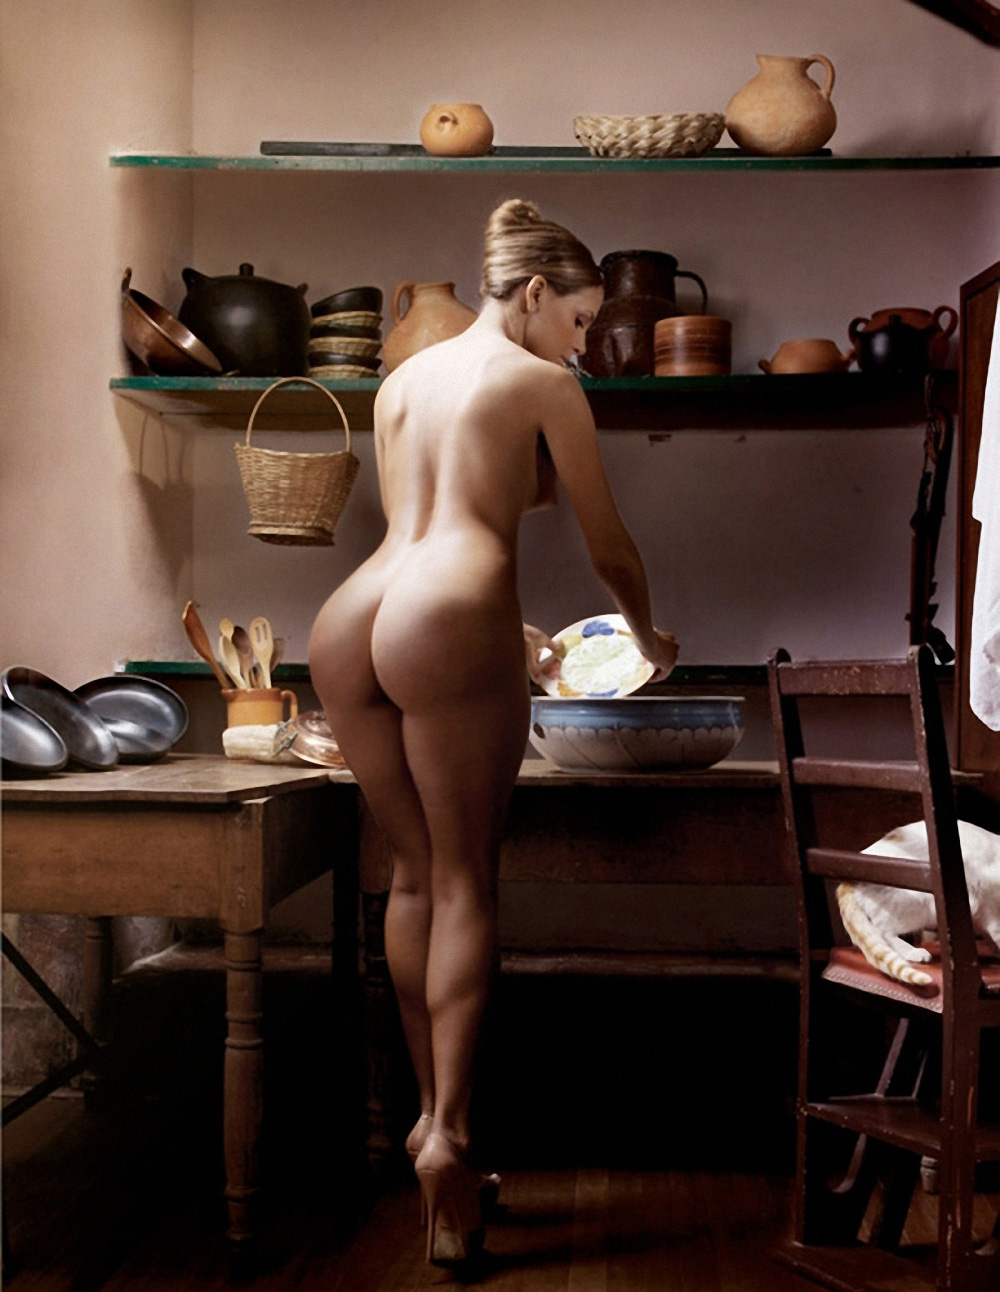 Final, Big butt girl naked in the kitchen thought